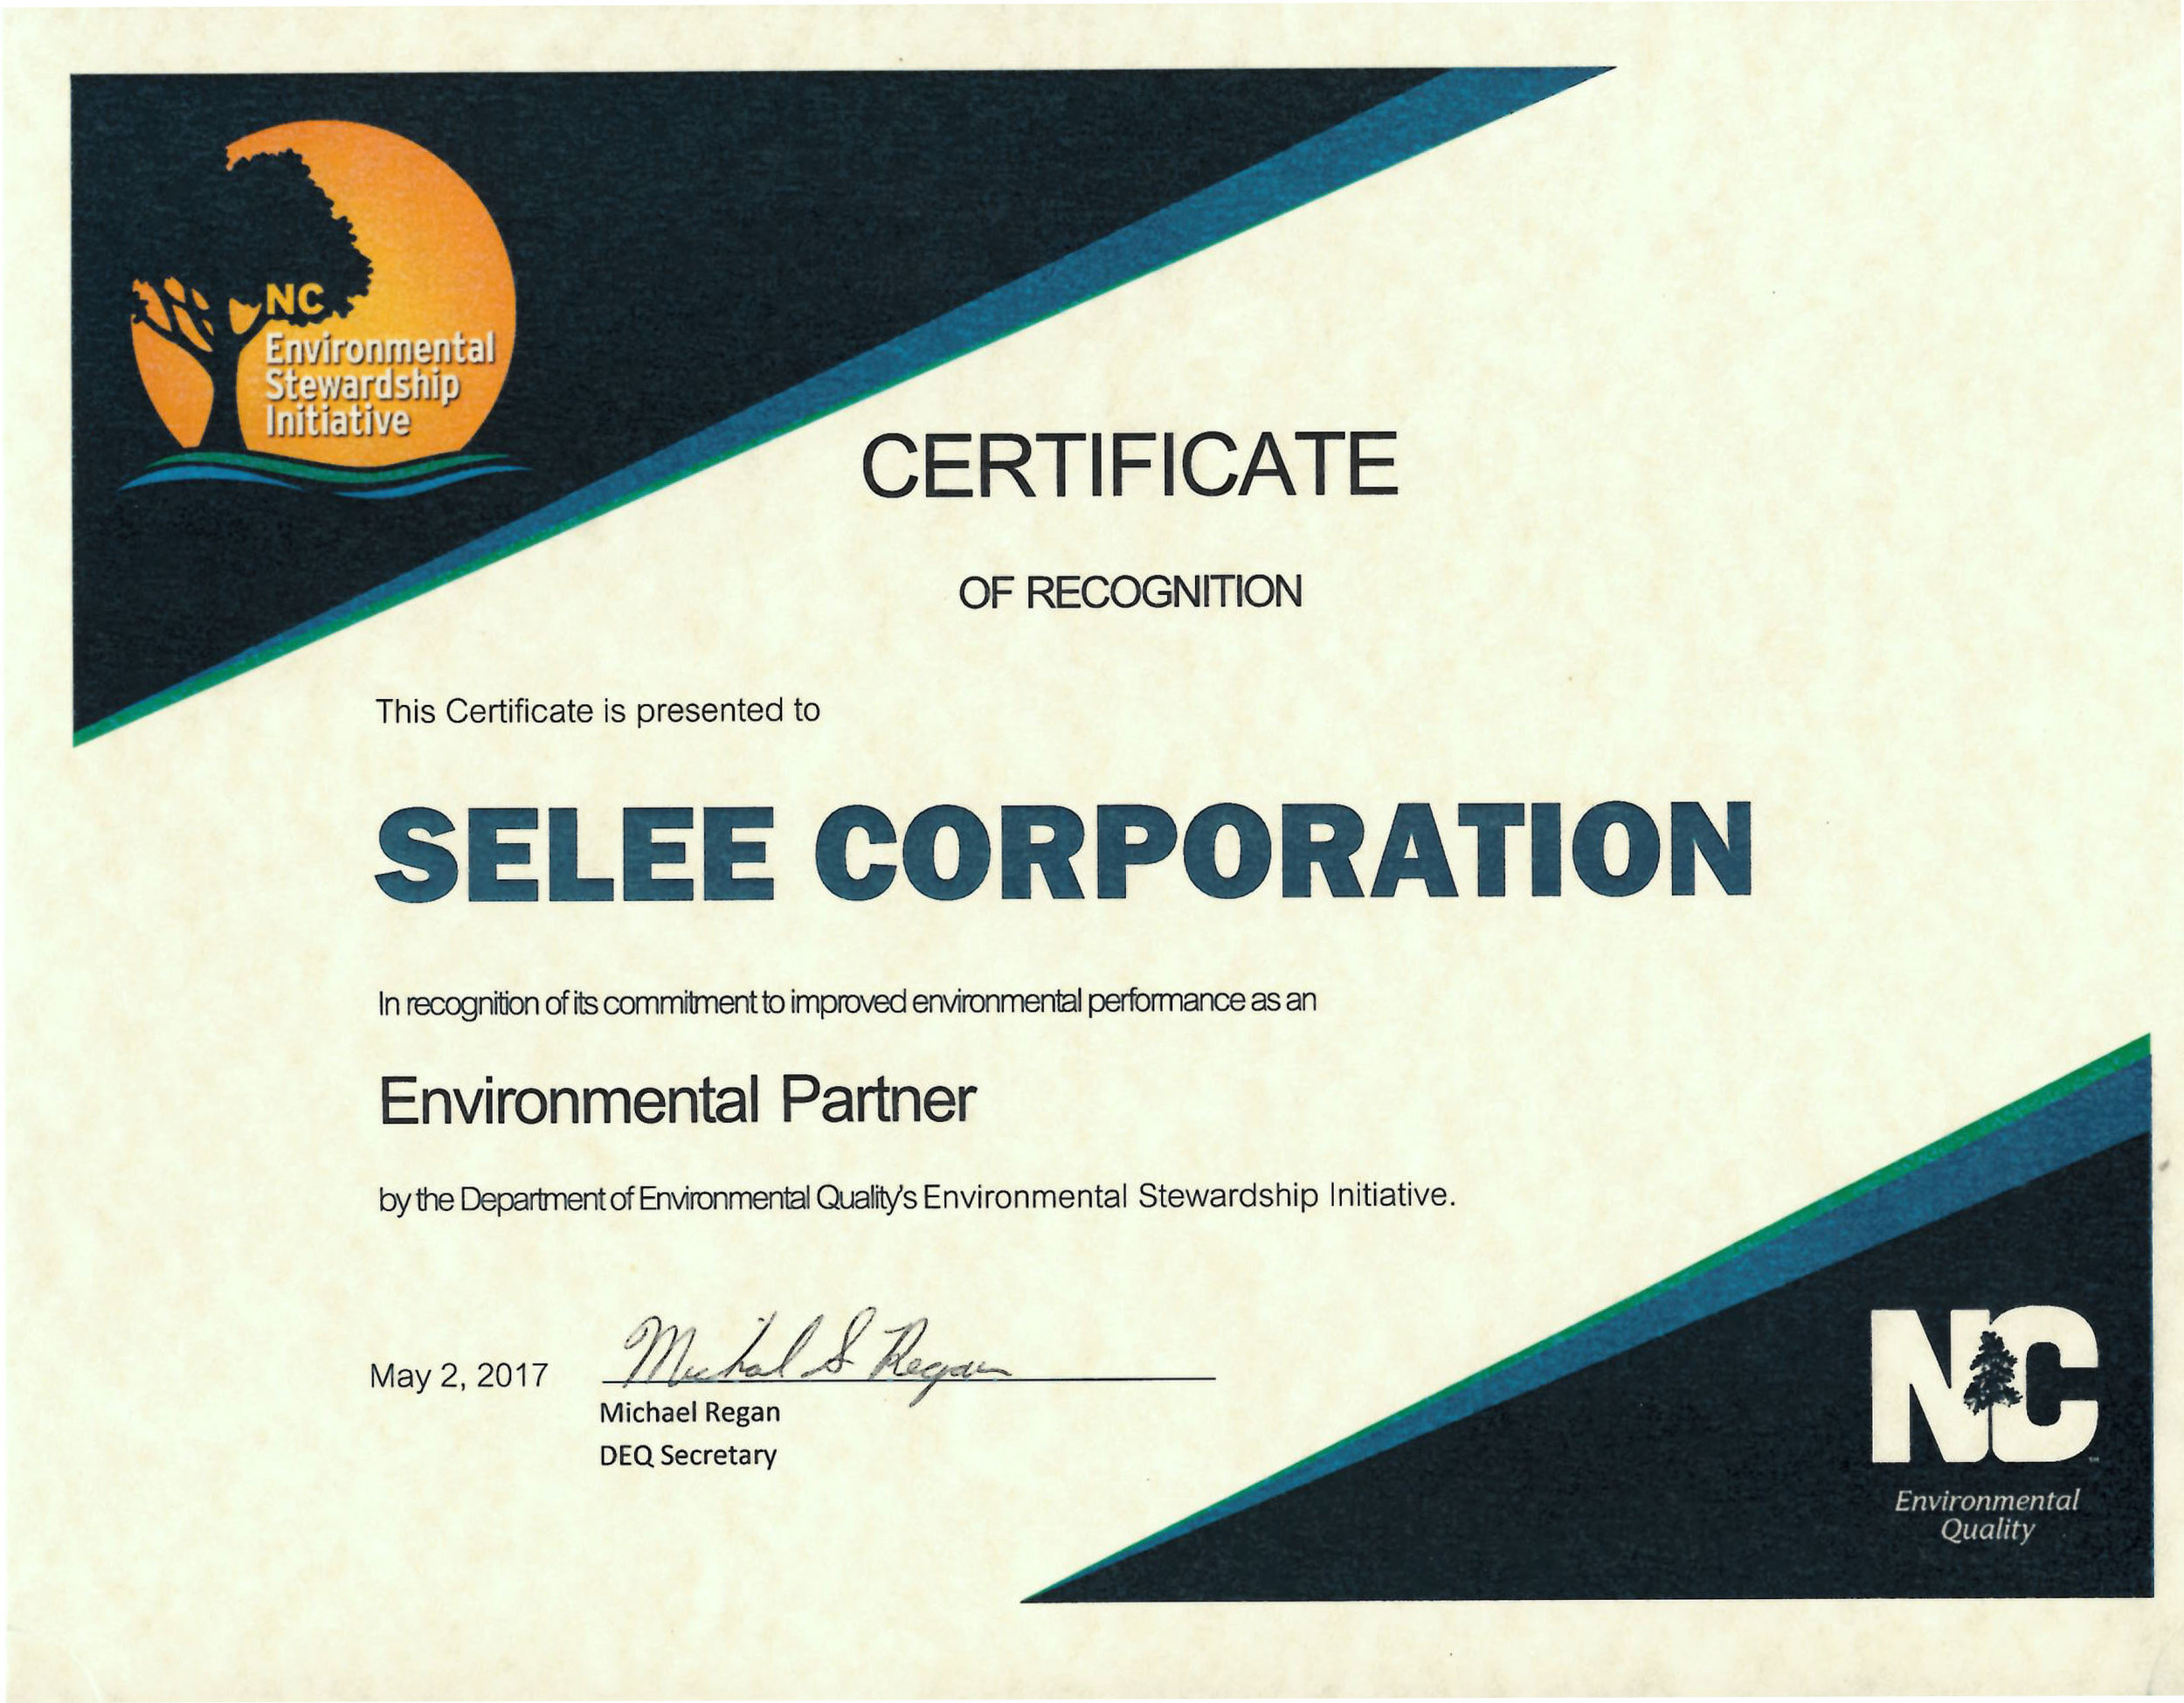 Certificate of Recognition from North Carolina Department of Environmental Quality